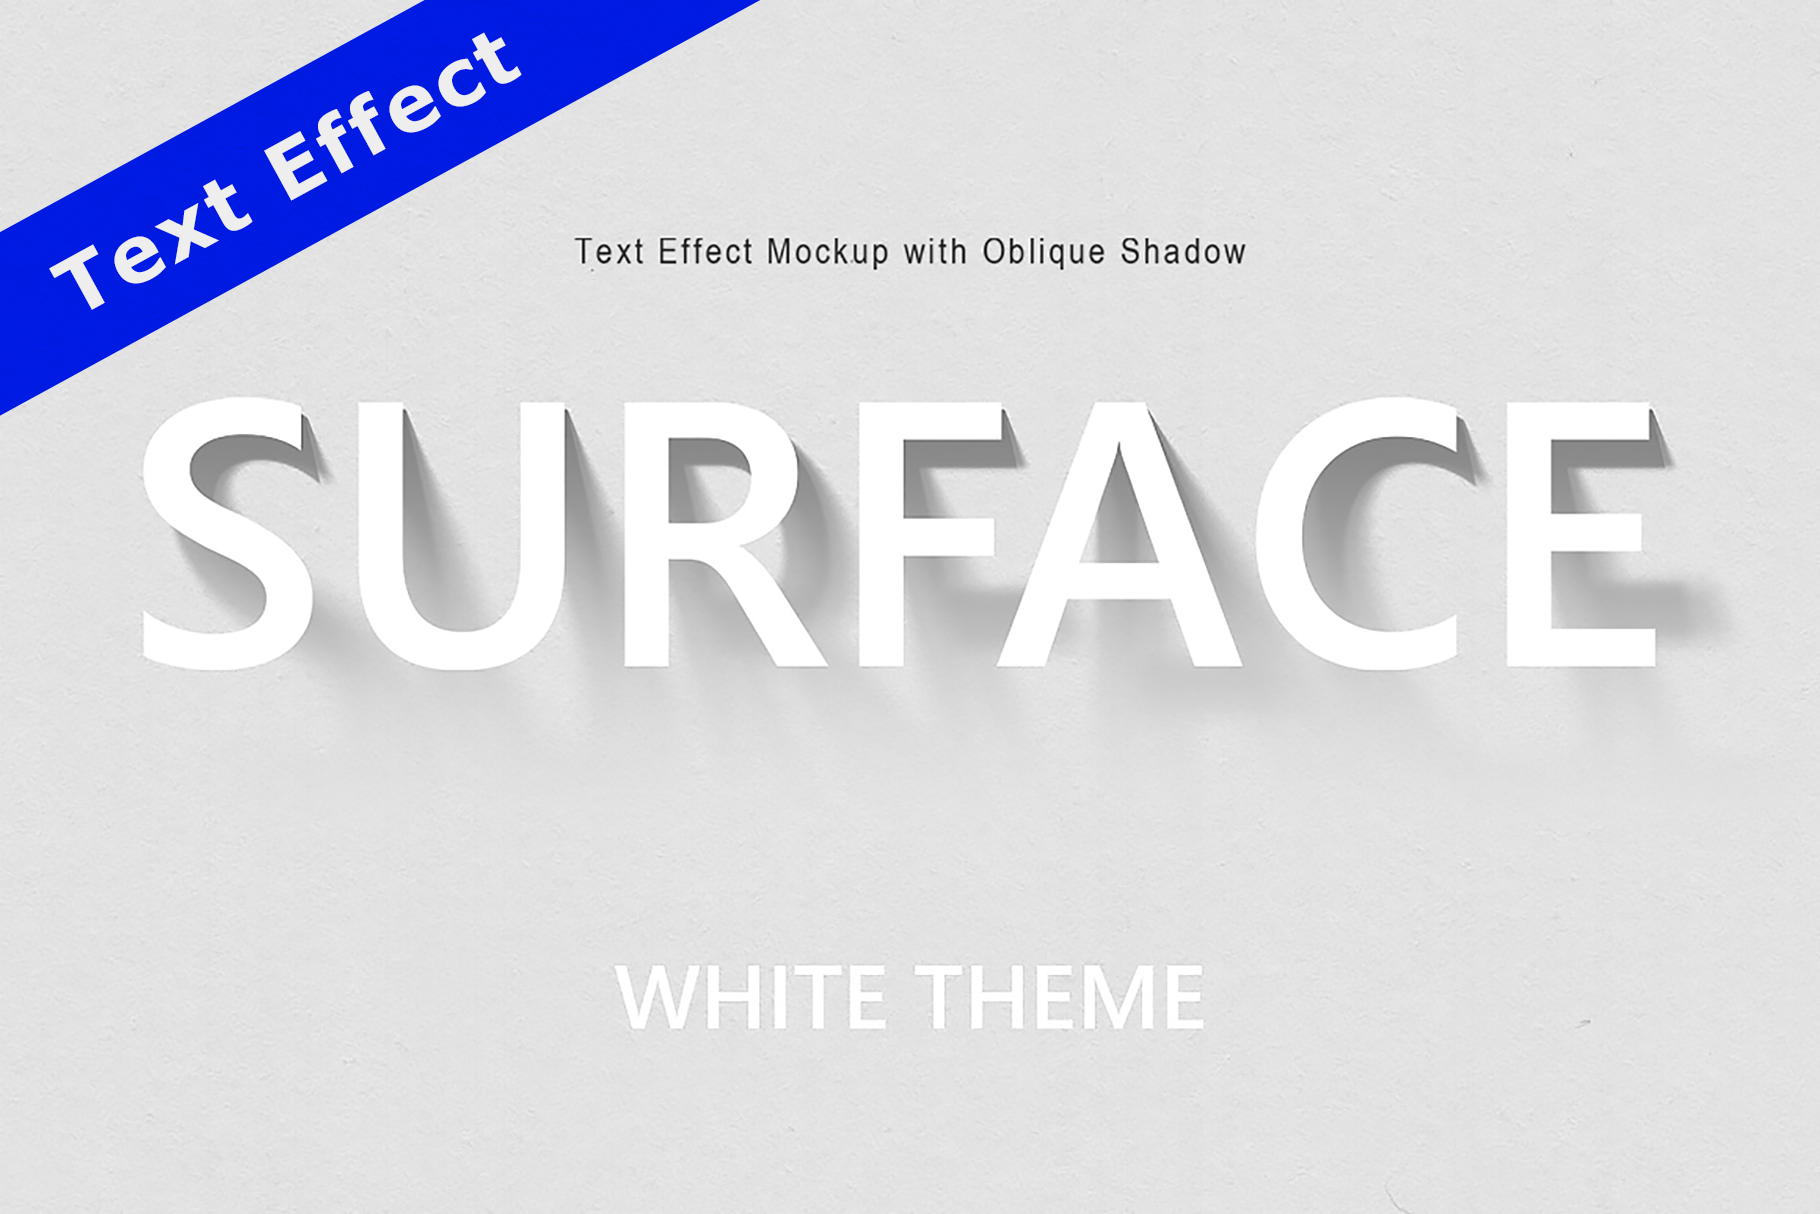 Text Effect Mockup with Oblique Shadow example image 1